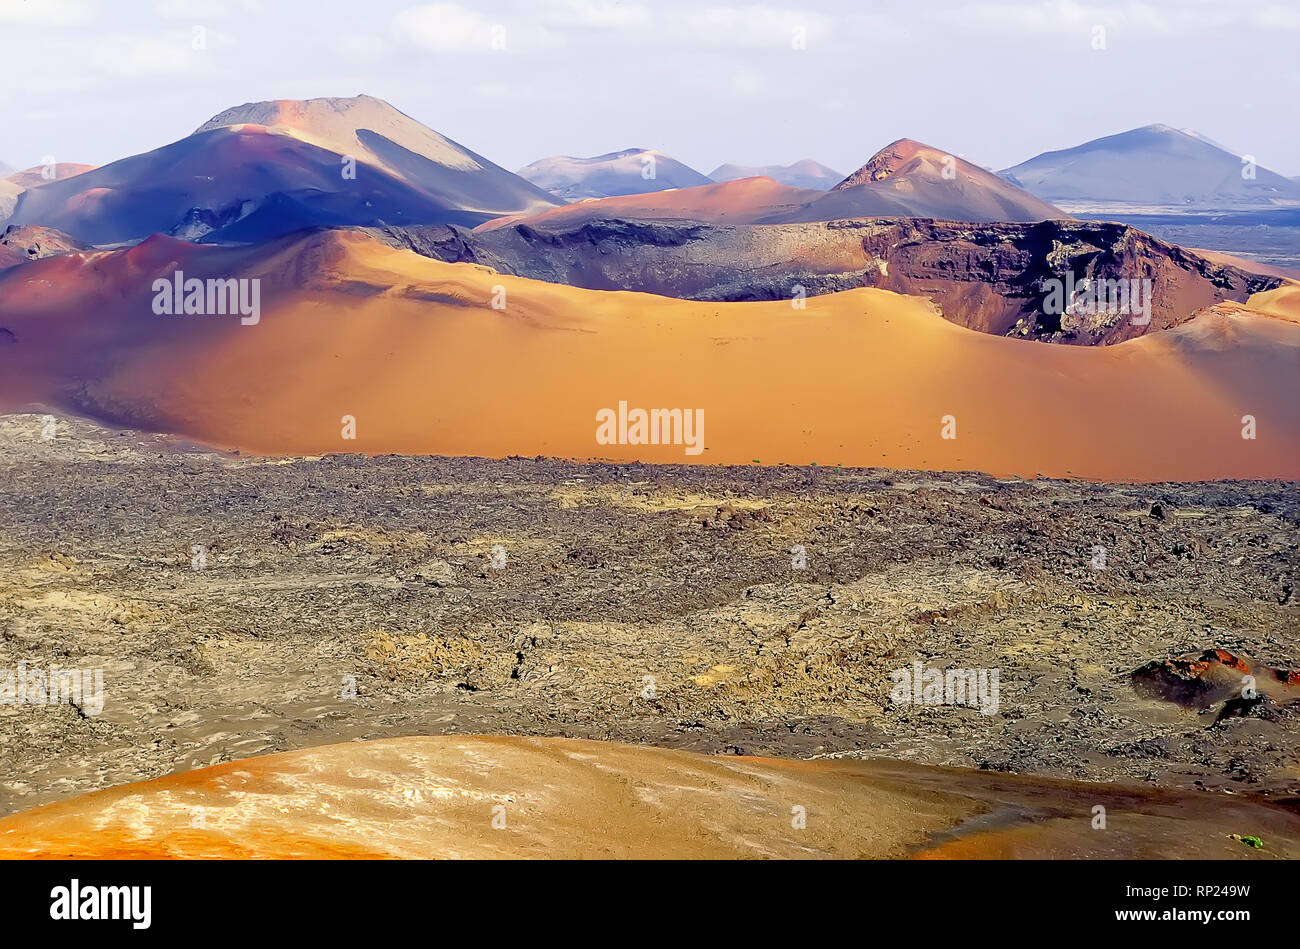 Montanas Del Fuego Volcanoes Timanfaya National Park Lanzarote Canary Islands Spain Europe Stock Photo Alamy